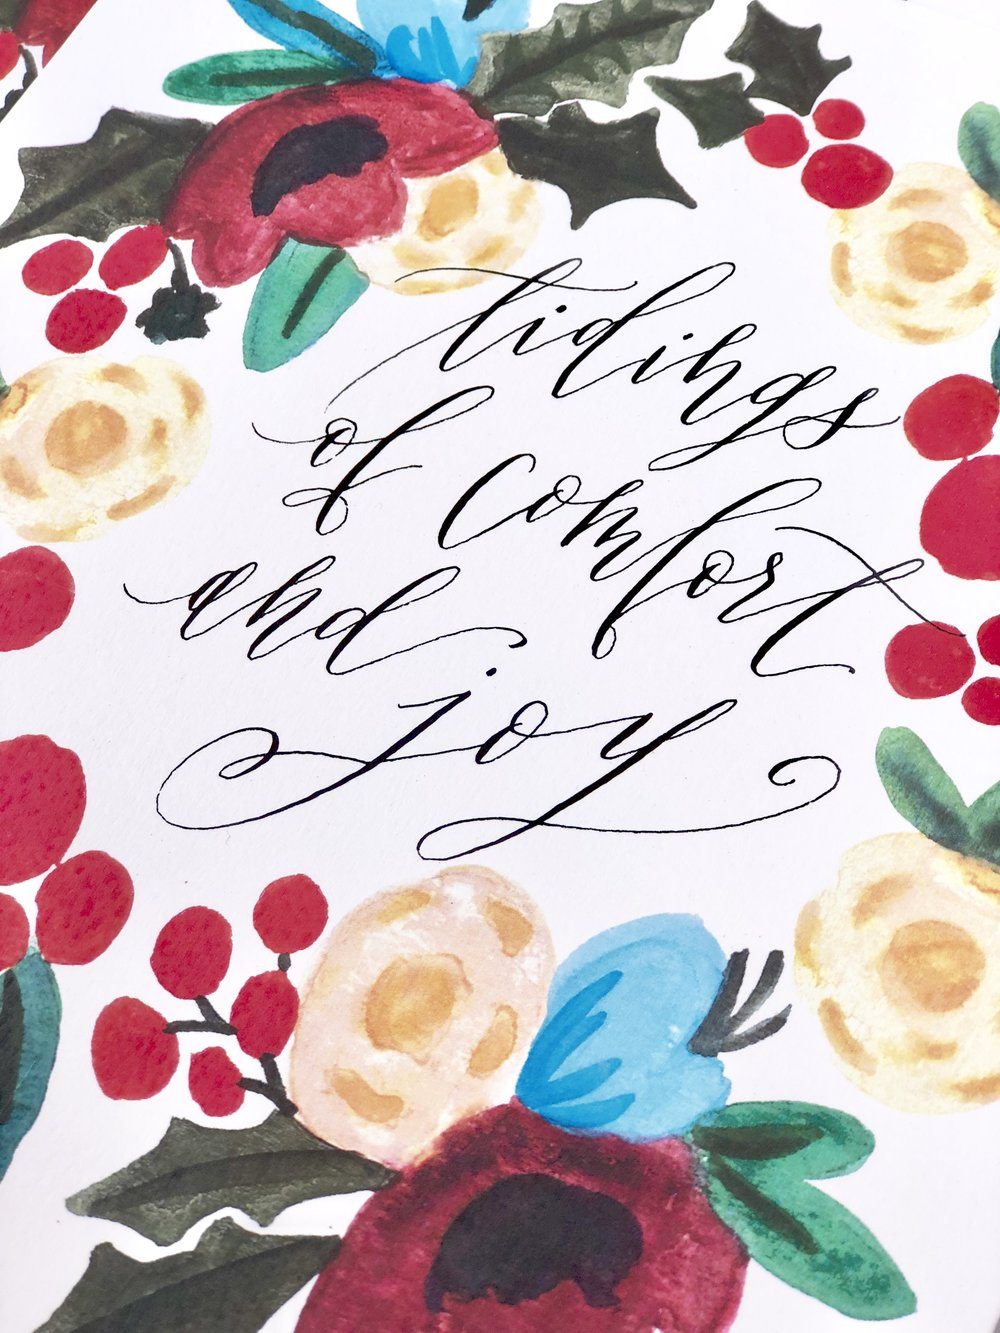 ConnarJoyCalligraphy_Wreath2.jpg